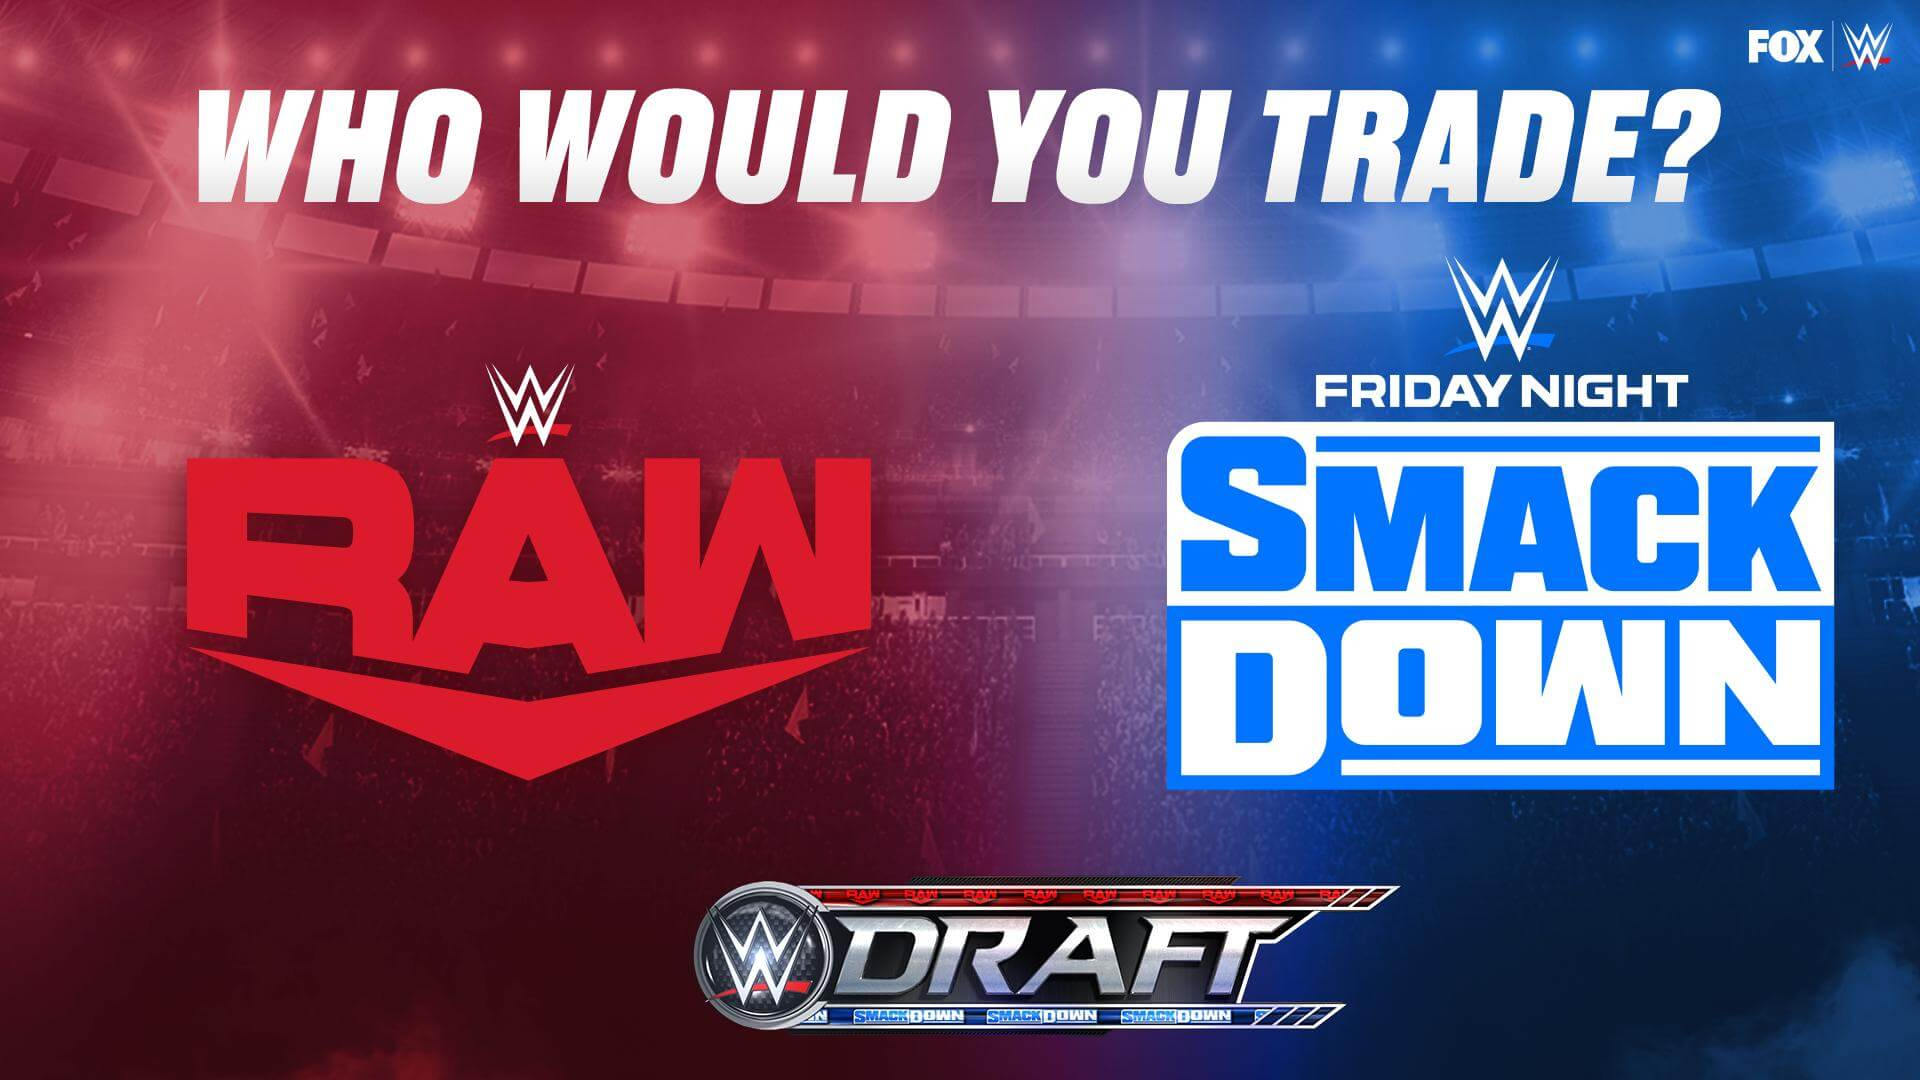 WWE Draft 2020 Results - Rehashing the Same Old Stories